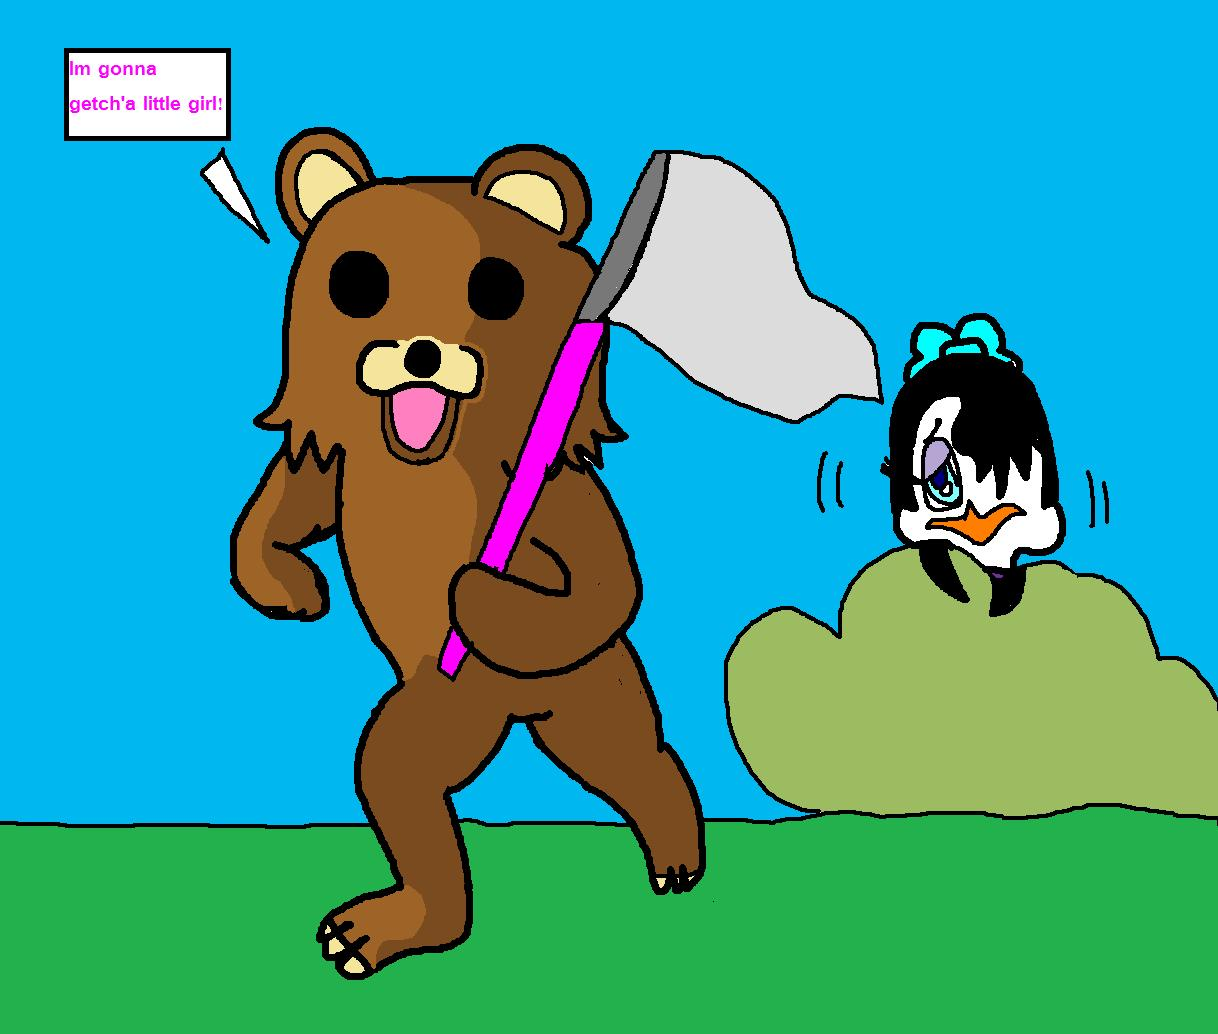 pedo bear wants me!!!!! DX - pedo bear Fan Art (23279869) - Fanpop